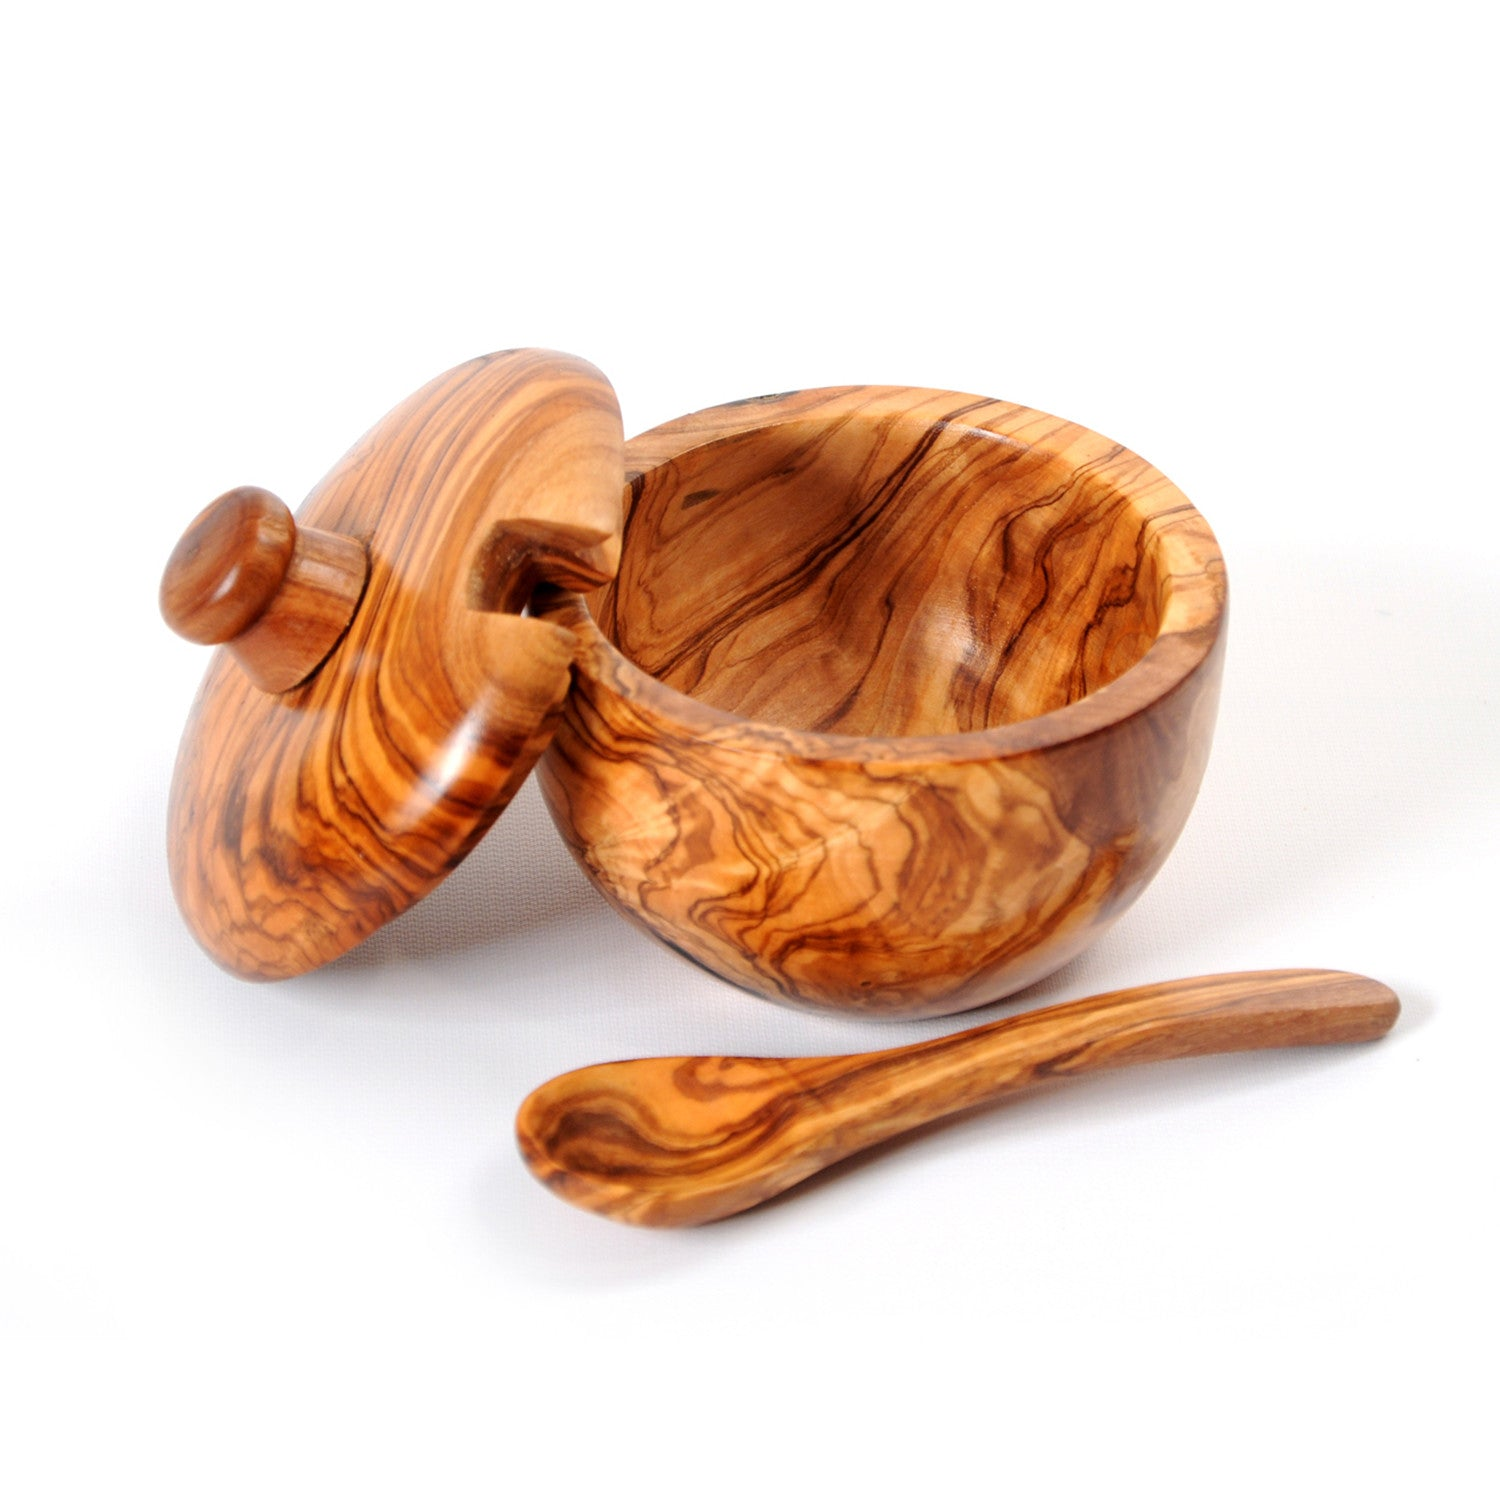 Olive Wood Sugar Bowl